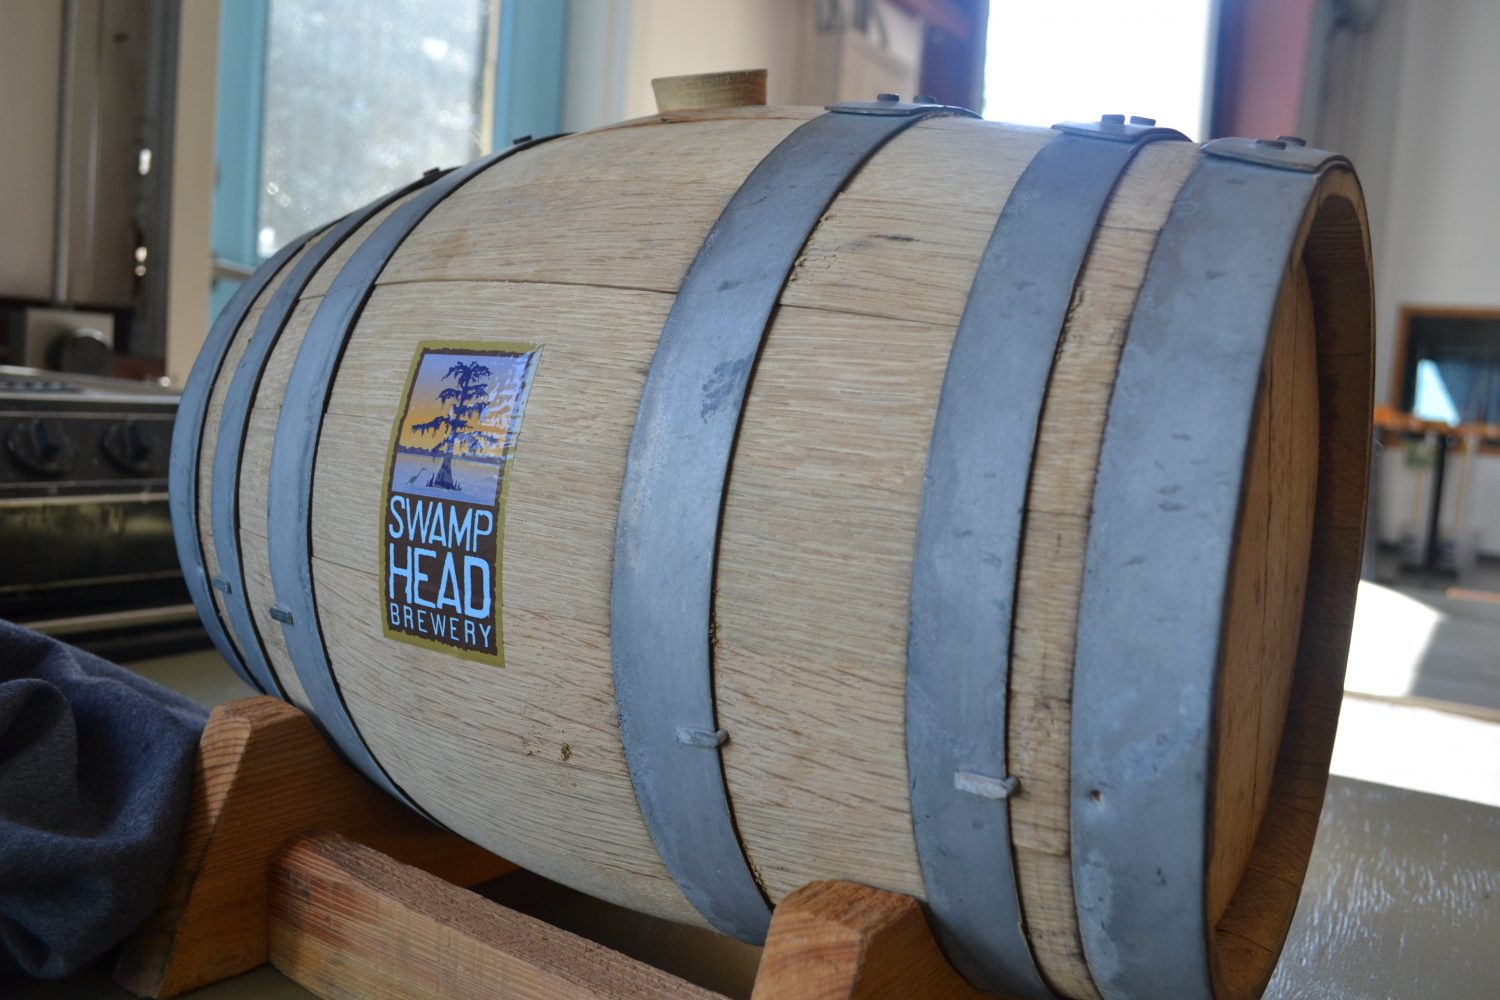 Barrel of locally crafted beer) at Swamp Head Brewery in Gainesville (photo by Chris Gilmore)